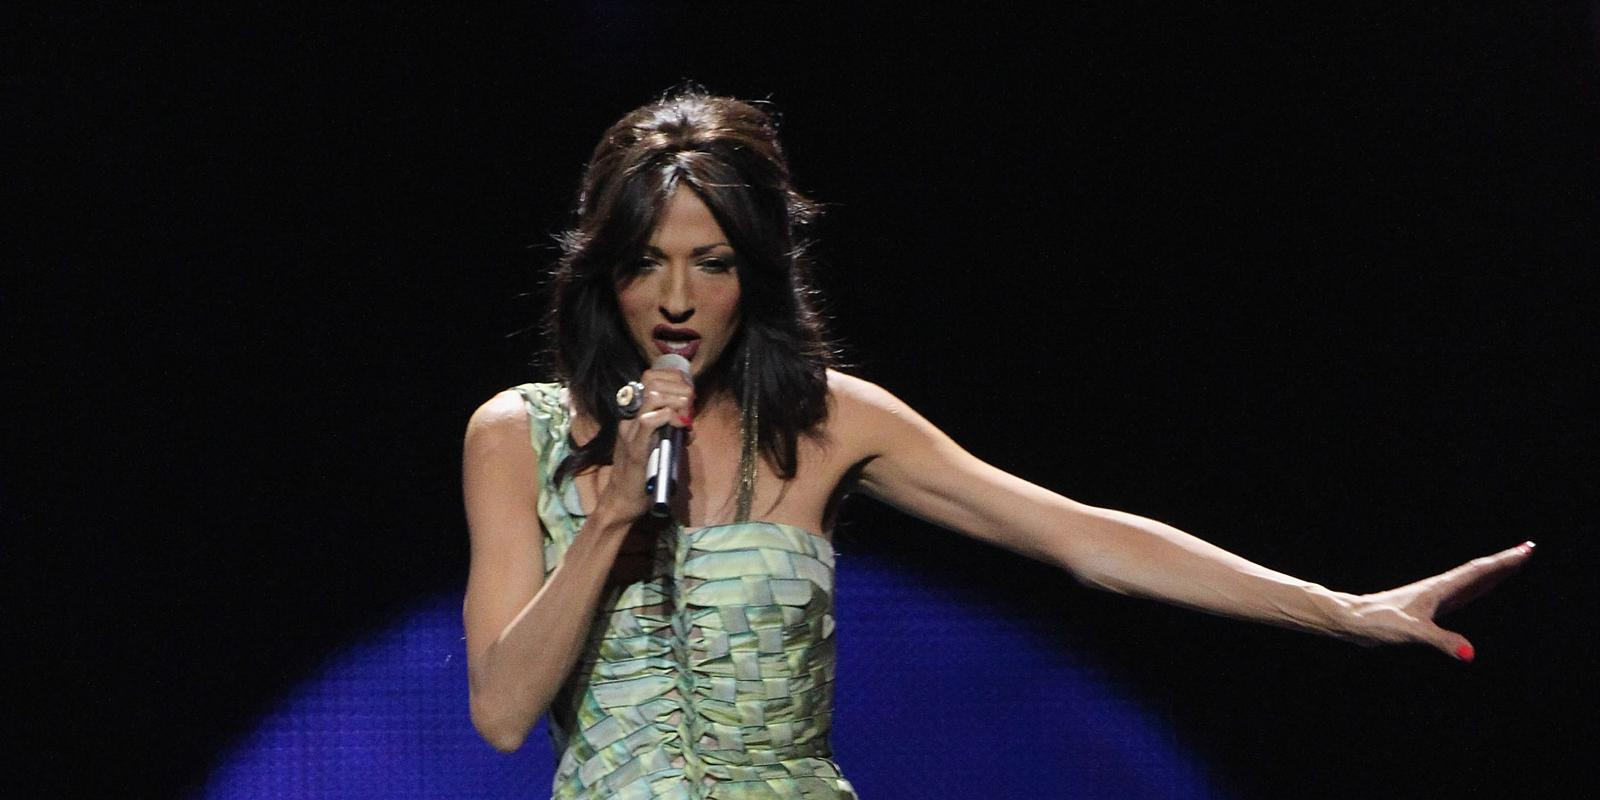 Conchita wurst and dana international in eurovision first star - Conchita Wurst And Dana International In Eurovision First Star 0